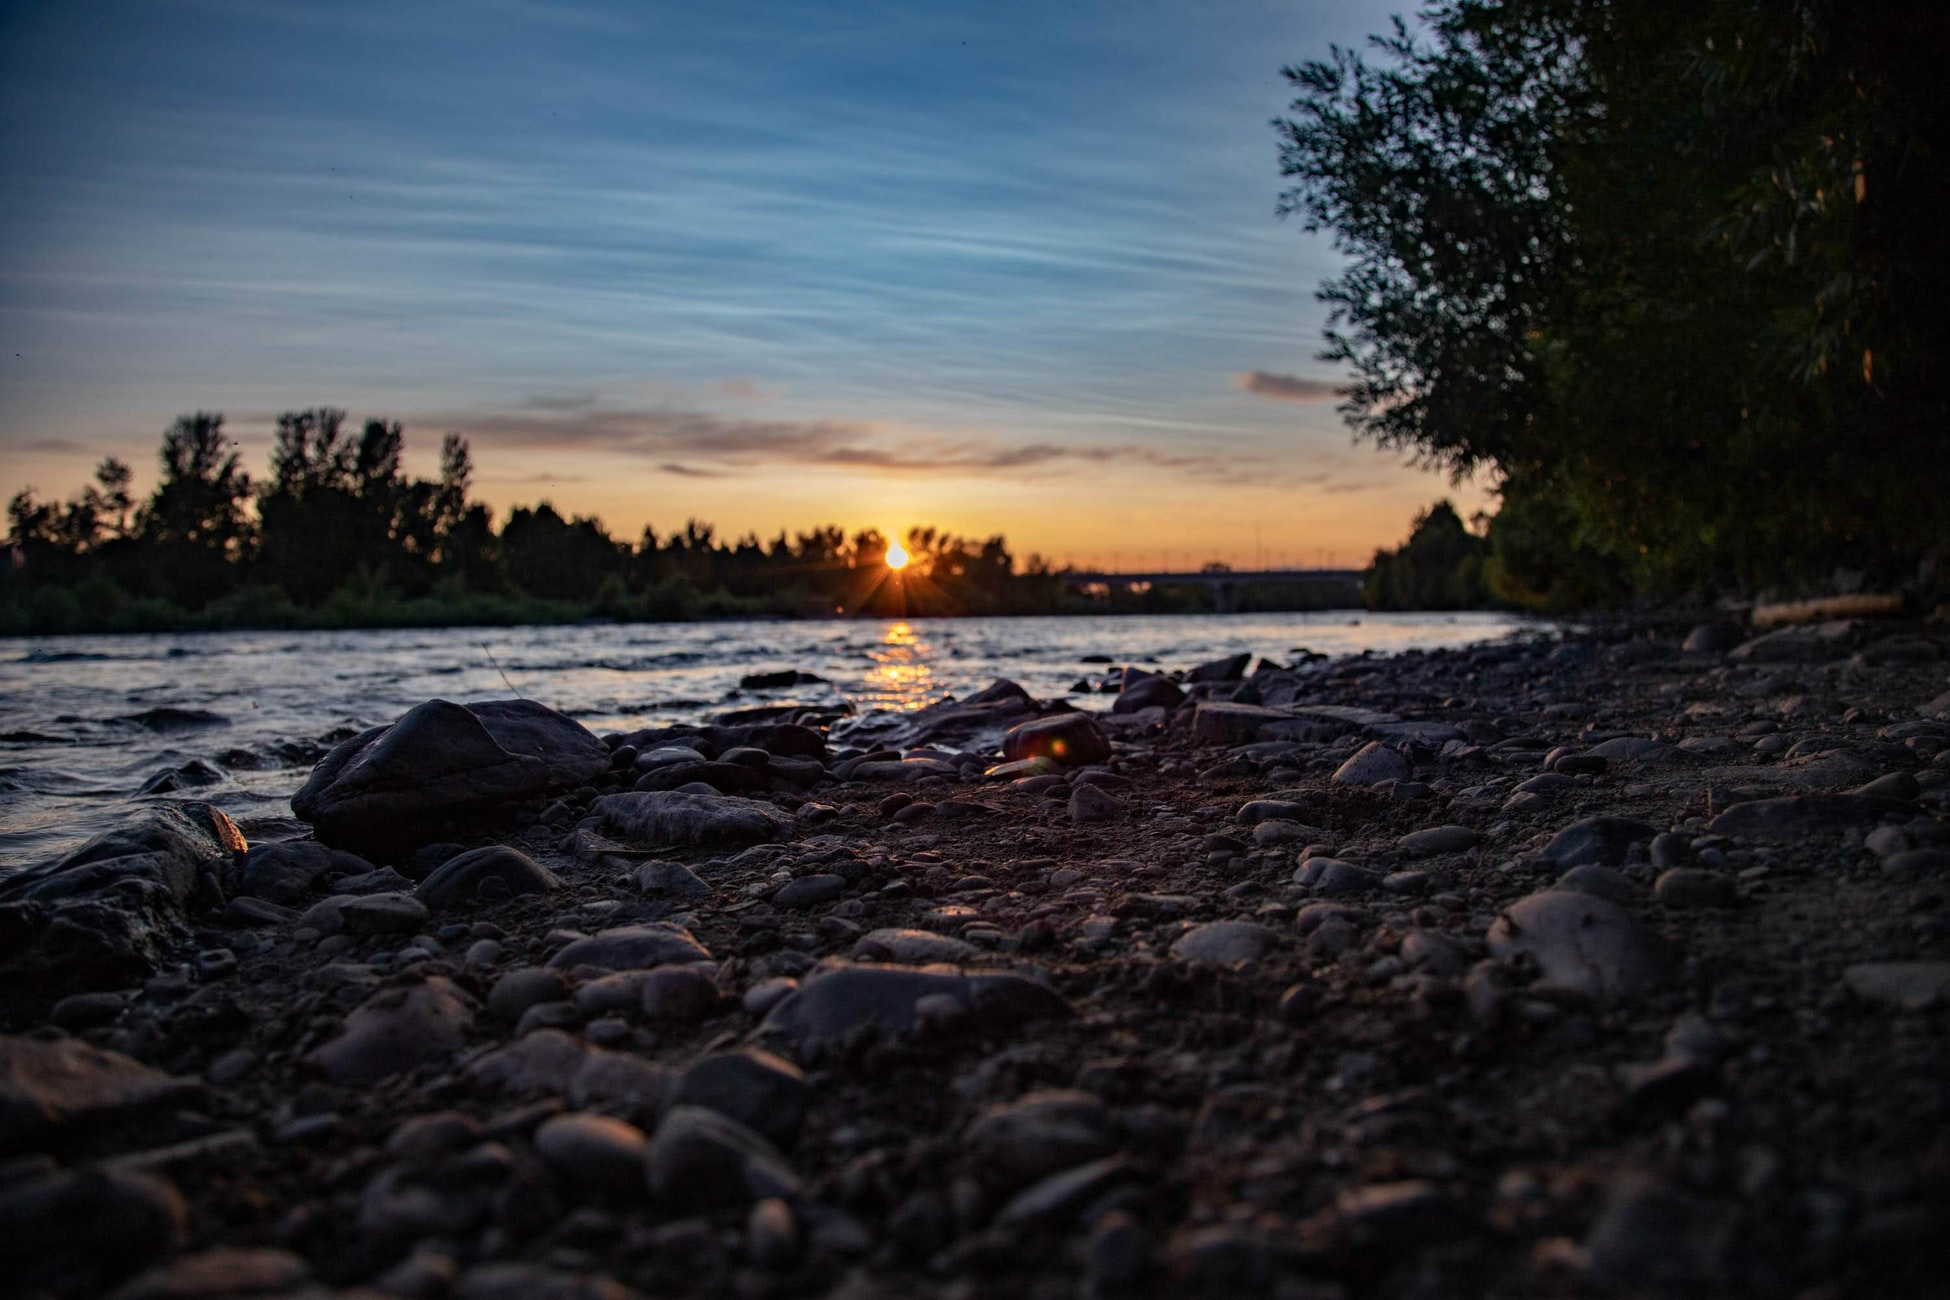 sunset over a river in Missoula, Montana